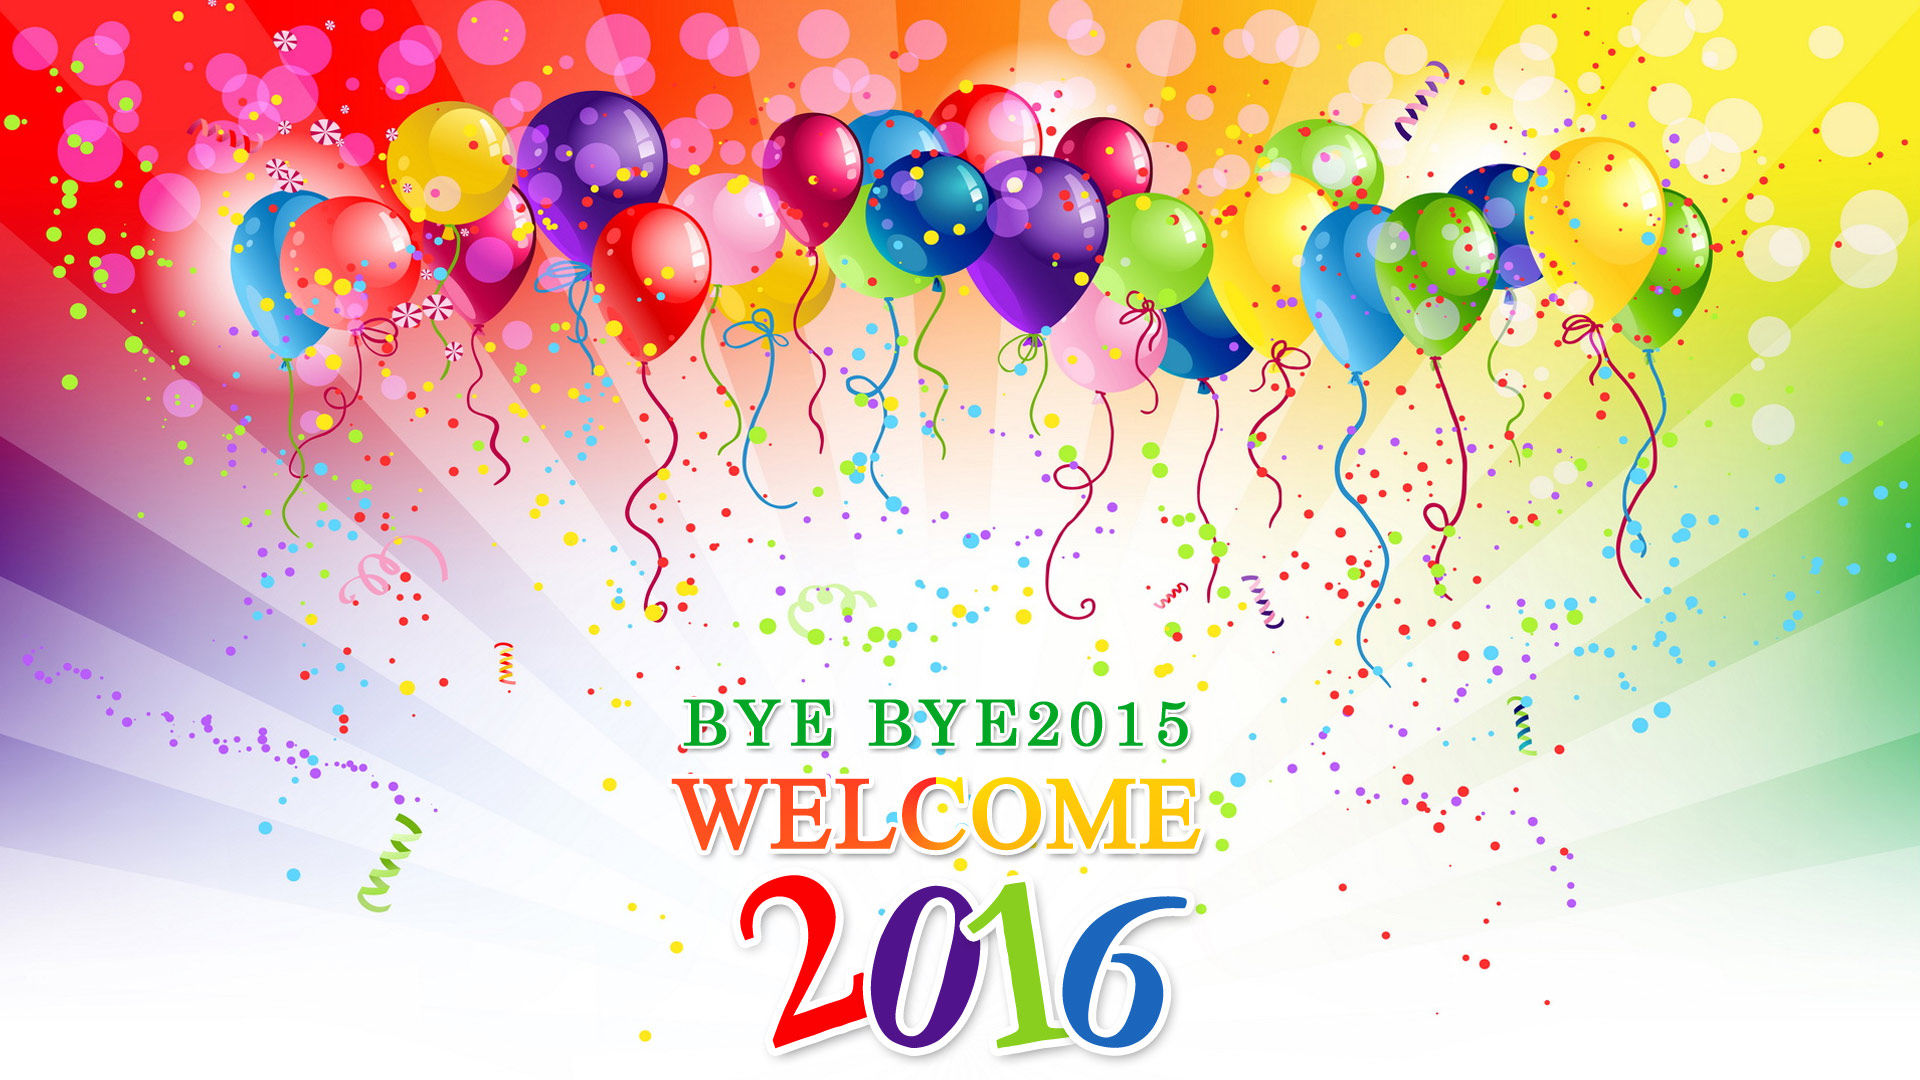 Bye Bye 2015 Welcome 2016 Pictures, Photos, And Images For